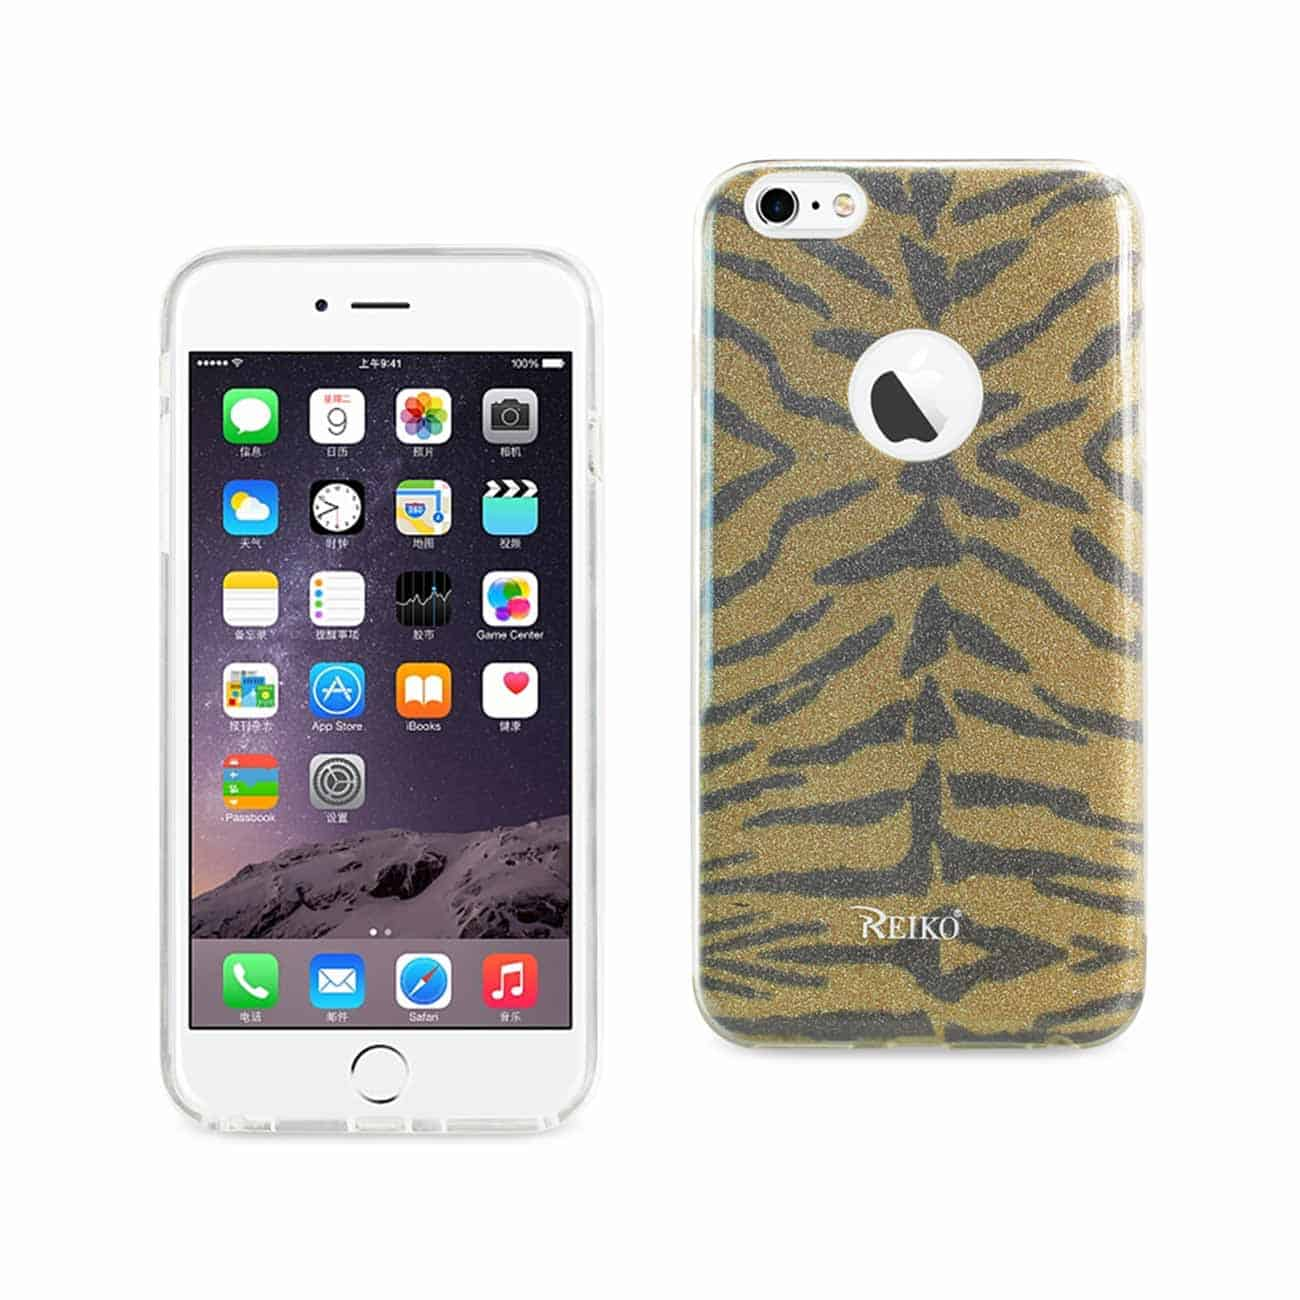 IPHONE 6 PLUS/ 6S PLUS SHINE GLITTER SHIMMER TIGER STRIPE HYBRID CASE IN YELLOW